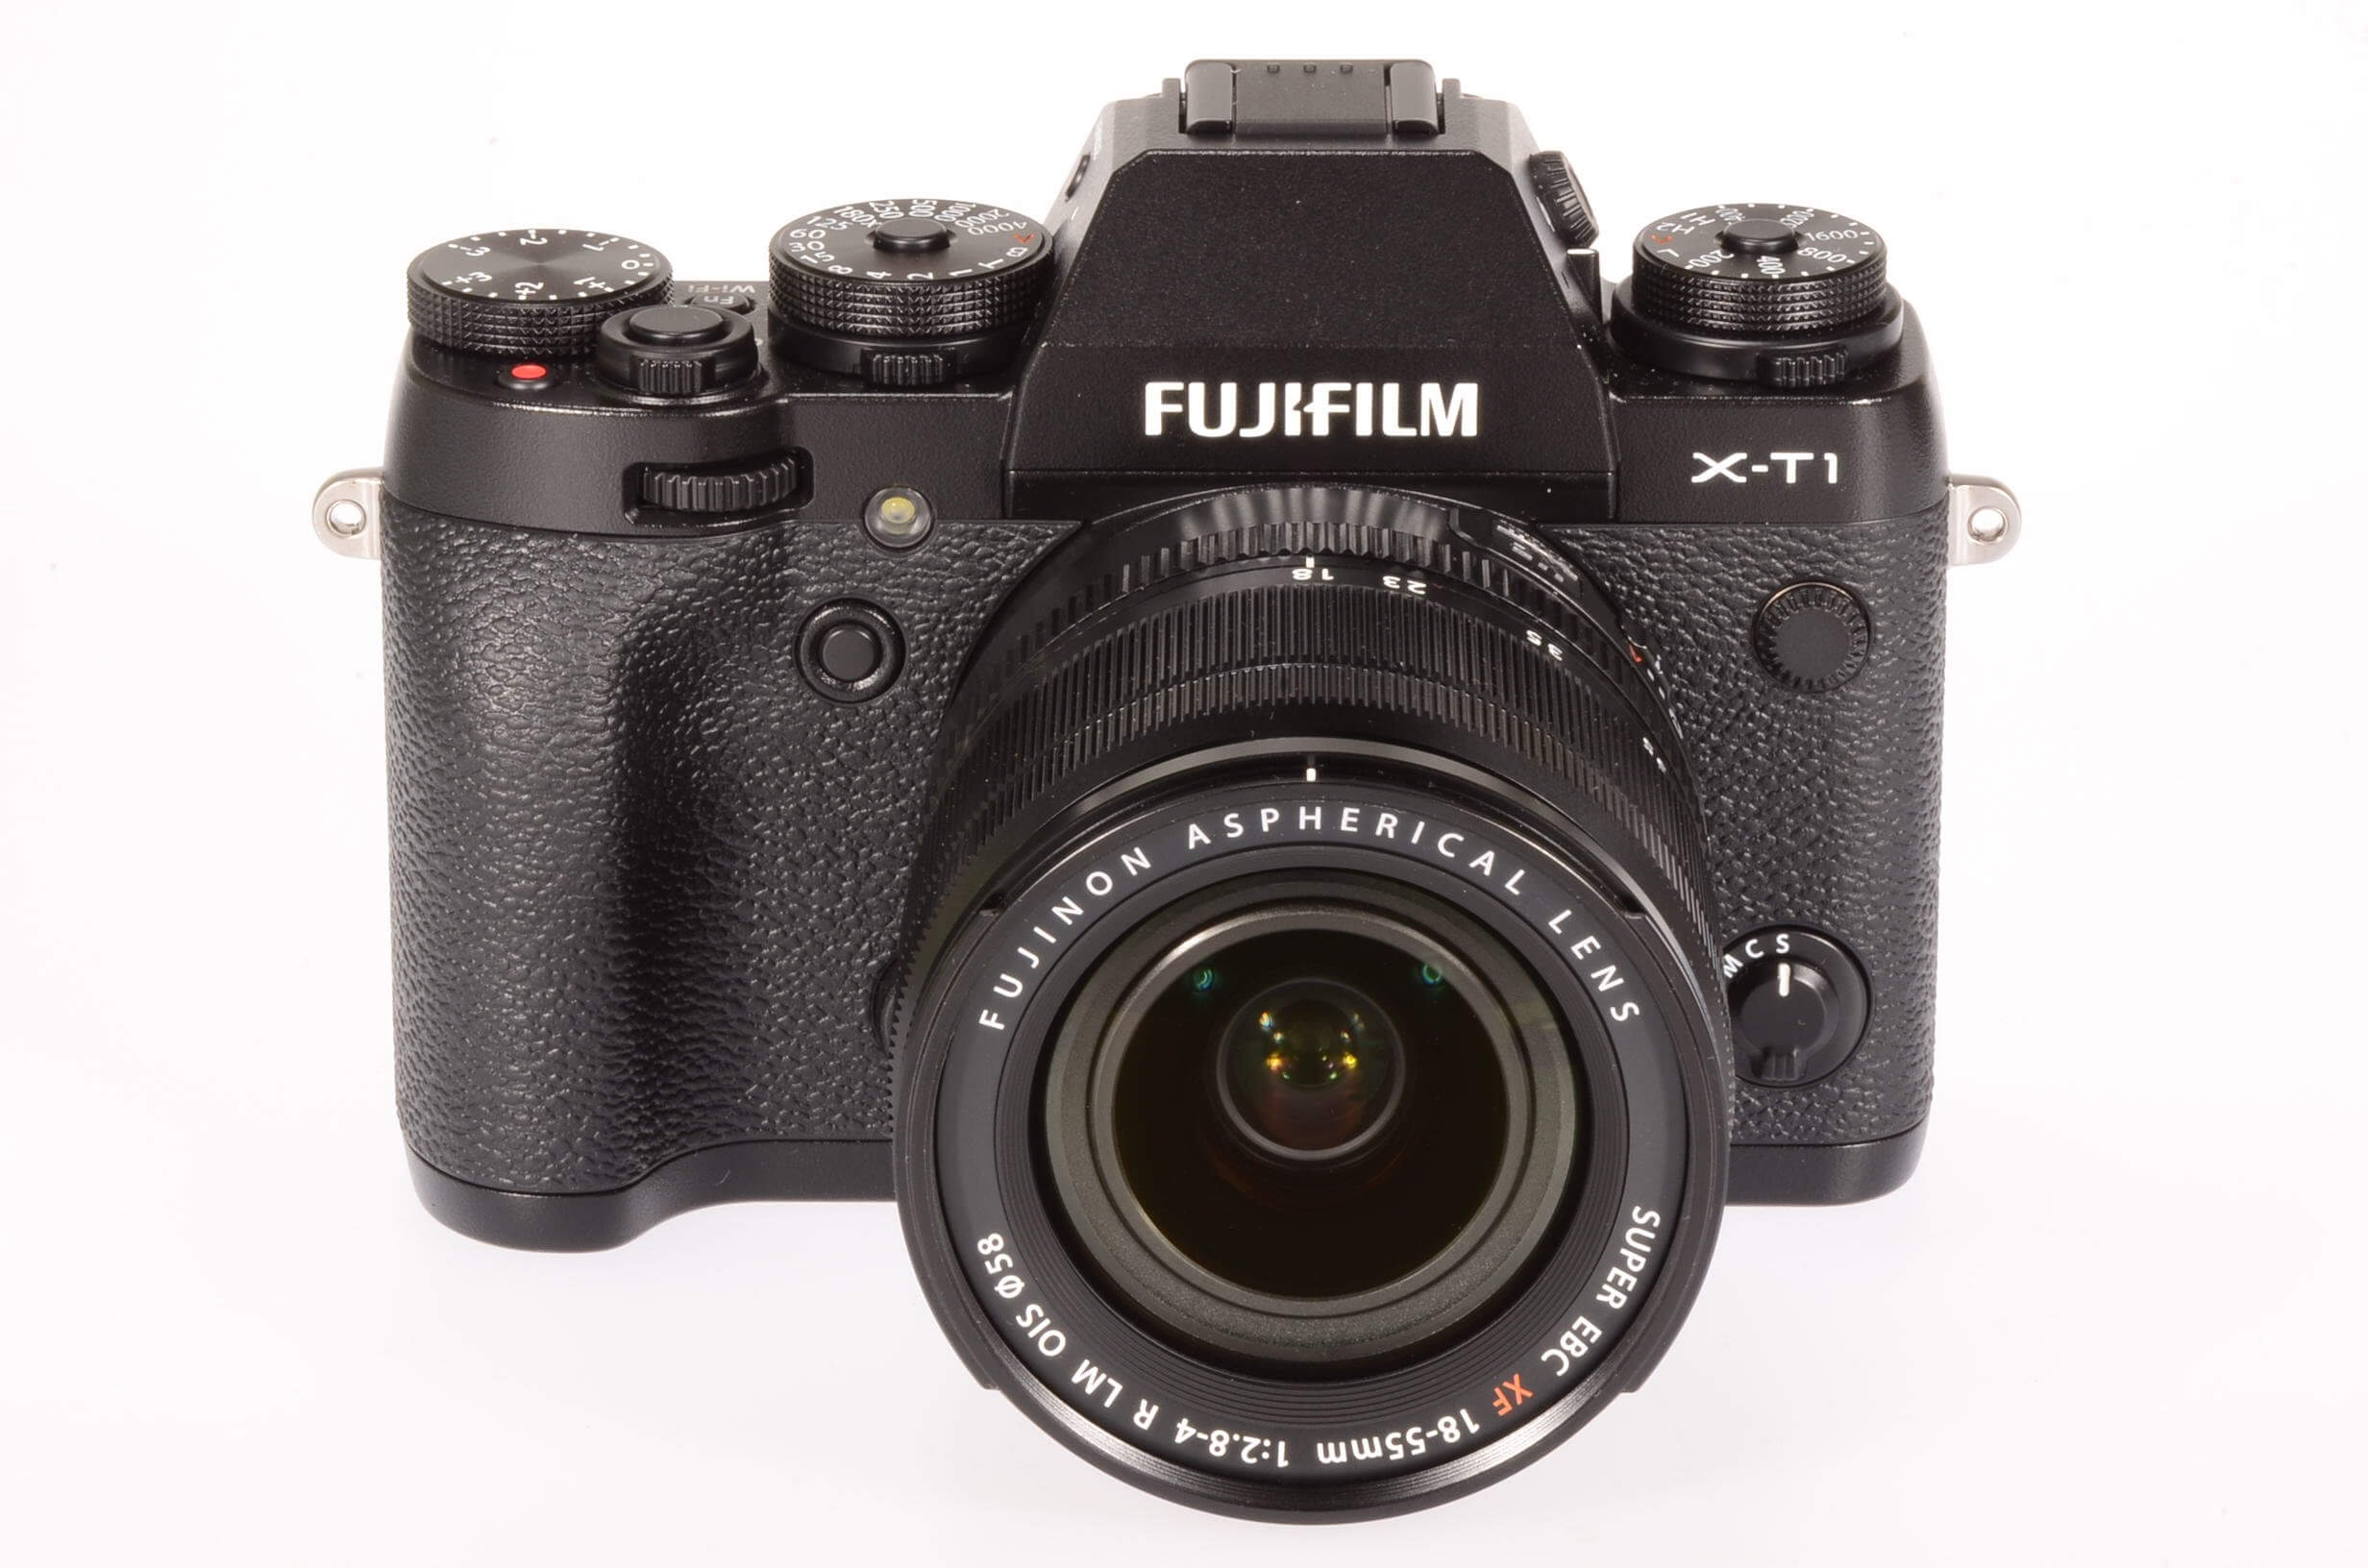 Fuji X-T1 with 18-55mm lens, UK supplied, 6 weeks old!